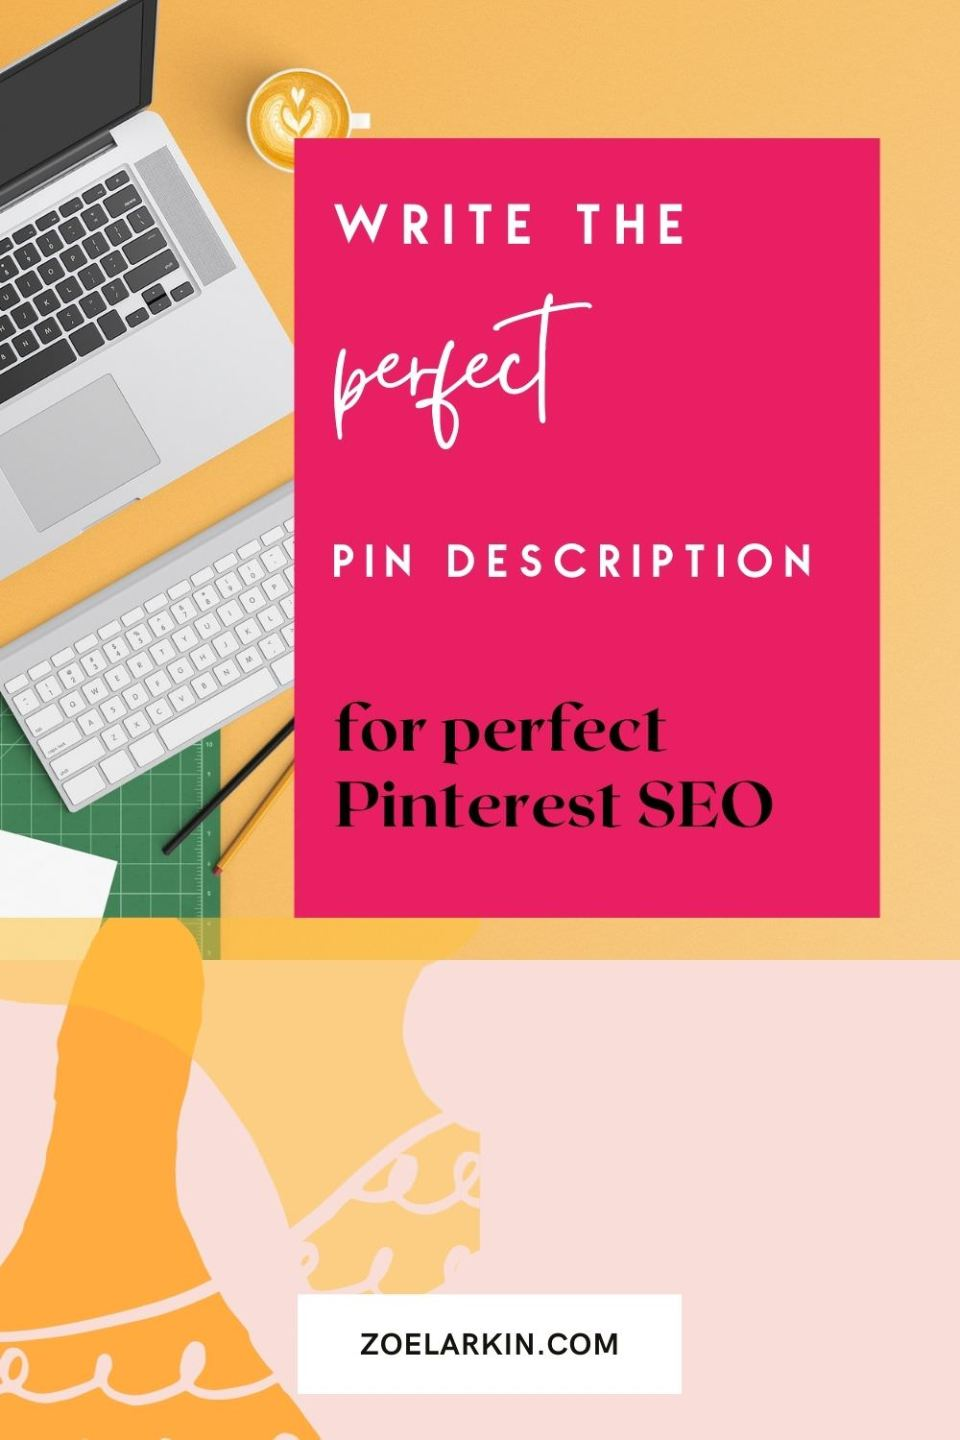 Stumped for ideas as to how to write the perfect Pinterest pin title and description? In this easy-to-digest blog post, I'll give you 16 actionable tips so that you can get writing your pin descriptions right now. Learn the art of crafting click-worthy descriptions + titles that will get your target audience onto your website and you on their radar. Watch the video or read my article to find out how you can optimize your words for Pinterest SEO | #pinterestSEO #pinteresttips | zoelarkin.com